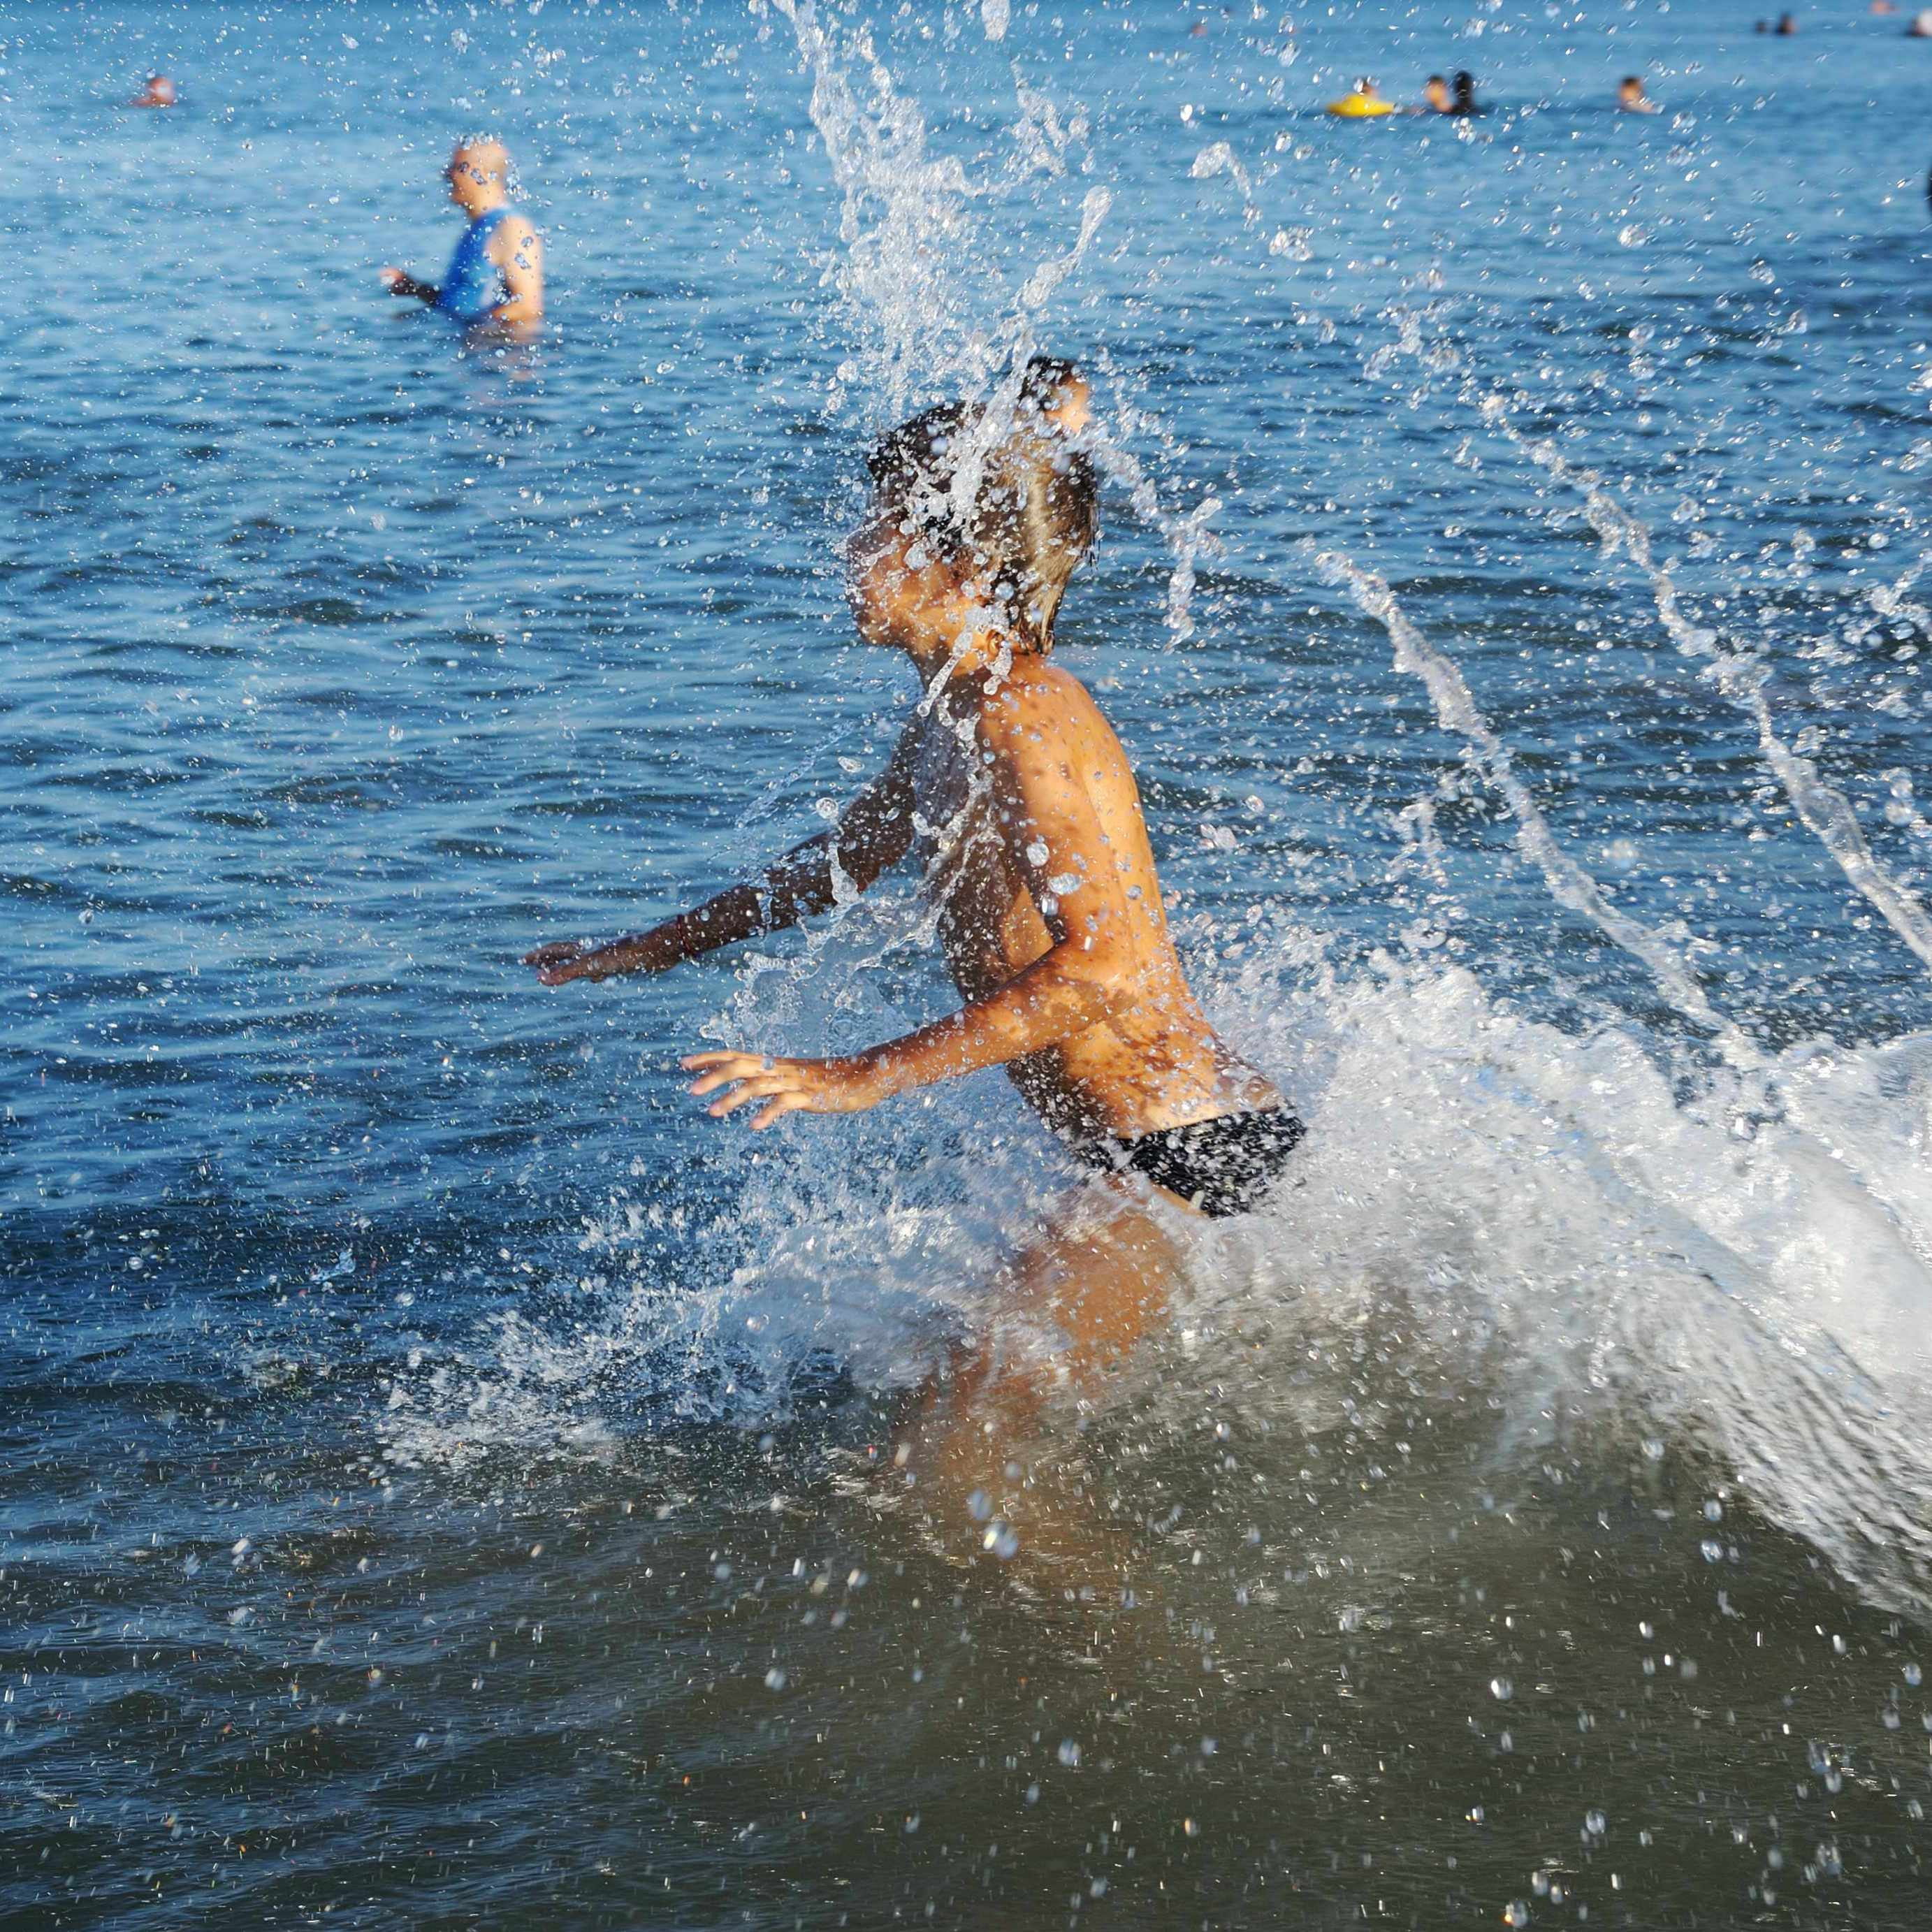 people in lake water swimming and a young child splashing through the water